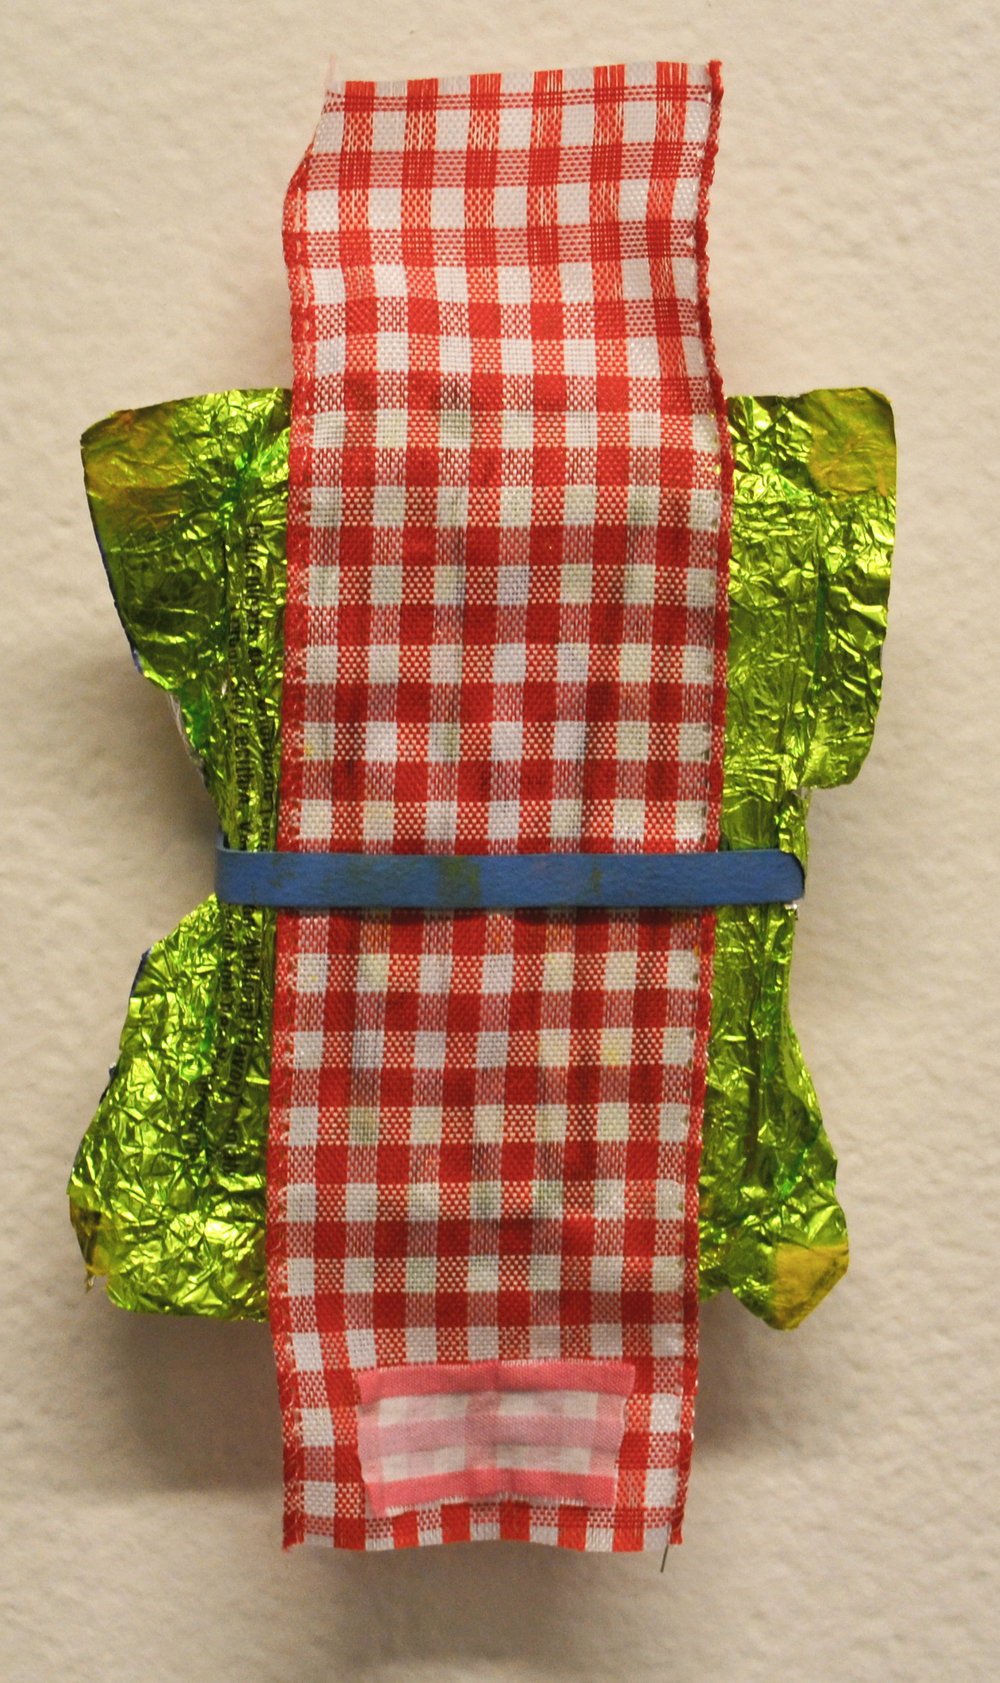 Wire edged ribbon, fabric, rubberband, foil, and oil paint on wood